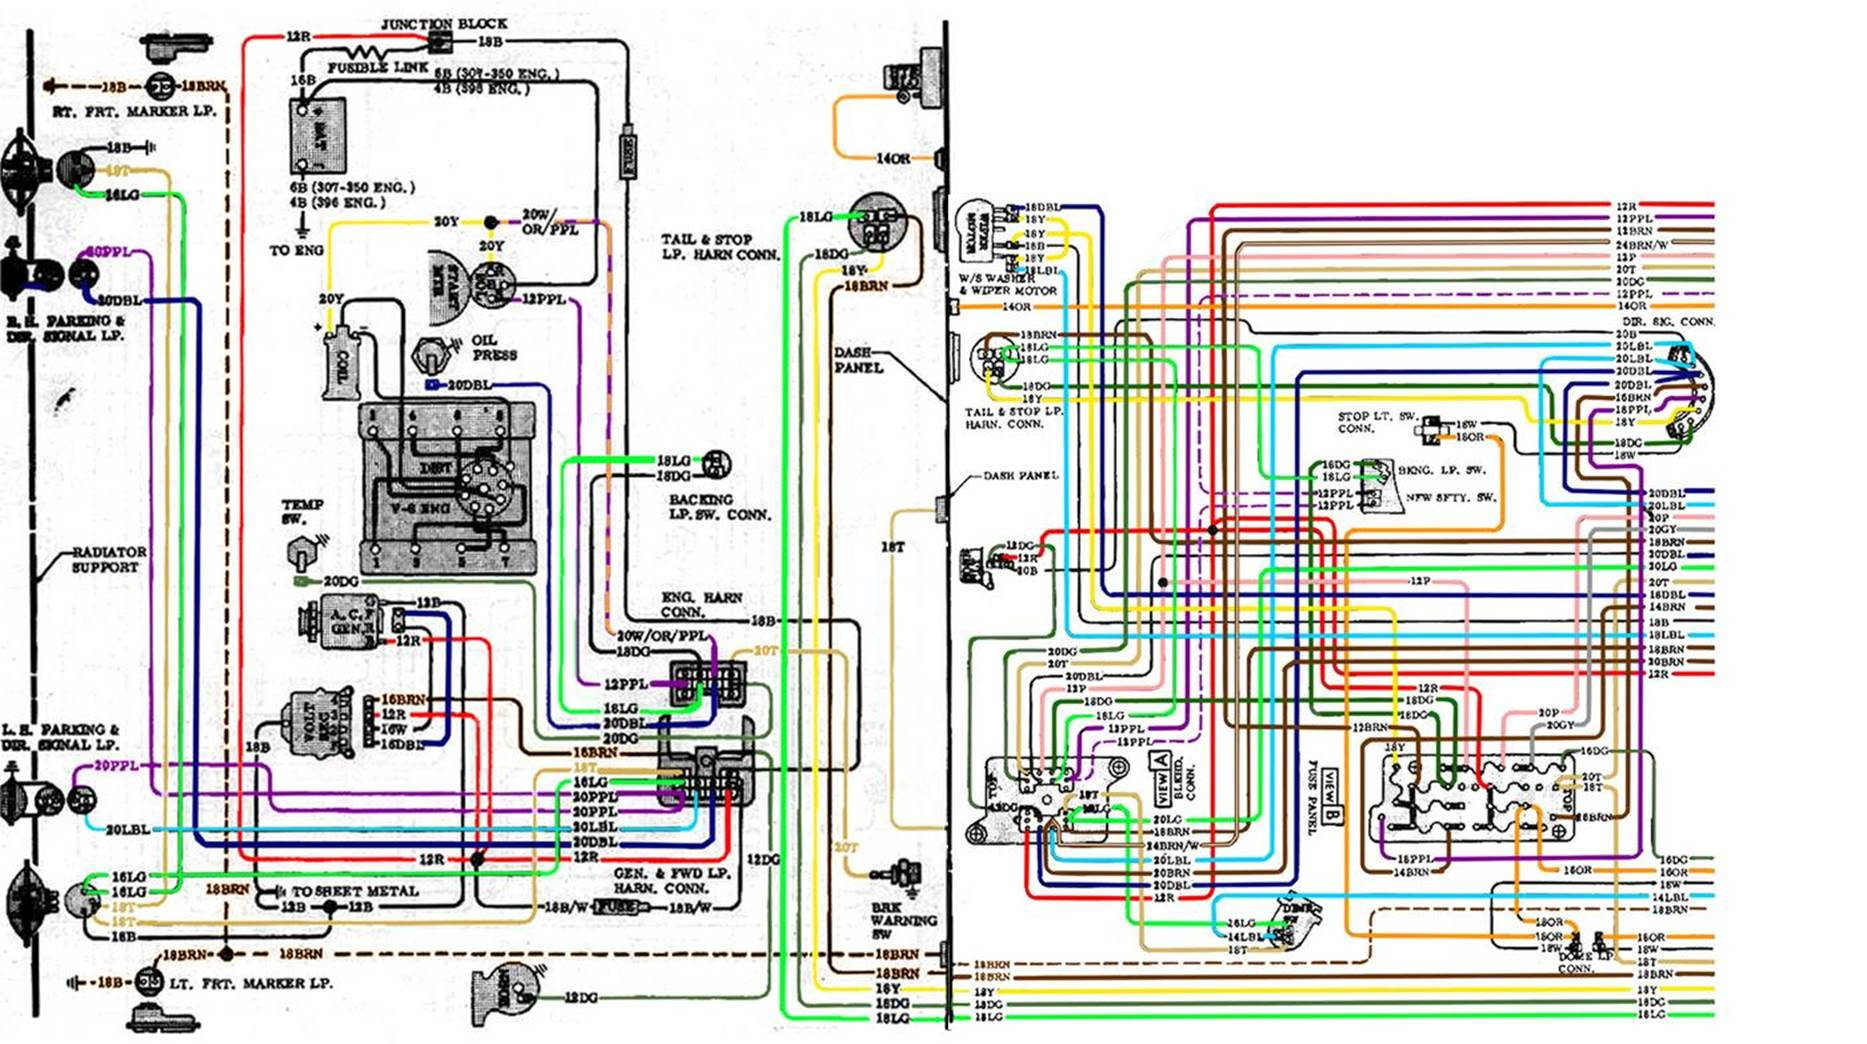 67 72 chevy wiring diagram rh outintheshop com 1972 chevy truck electrical diagram 1972 chevy c10 wiring schematic